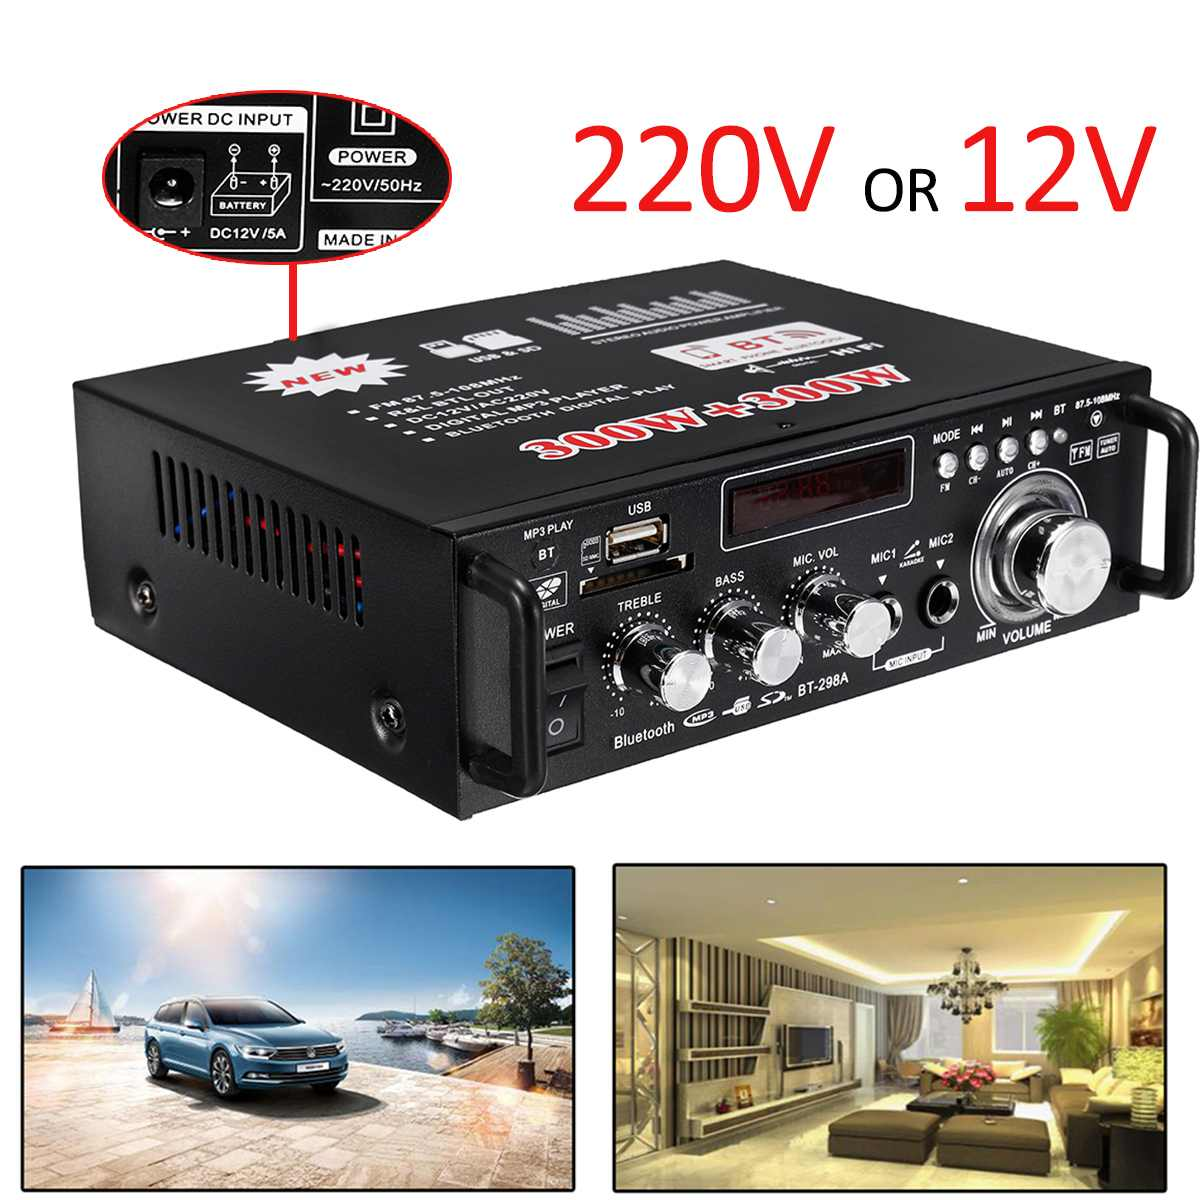 12V/ 220V BT-298A 2CH LCD Display Digital HIFI Audio Stereo Power Amplifier bluetooth FM Radio Car Home 600W with Remote Control